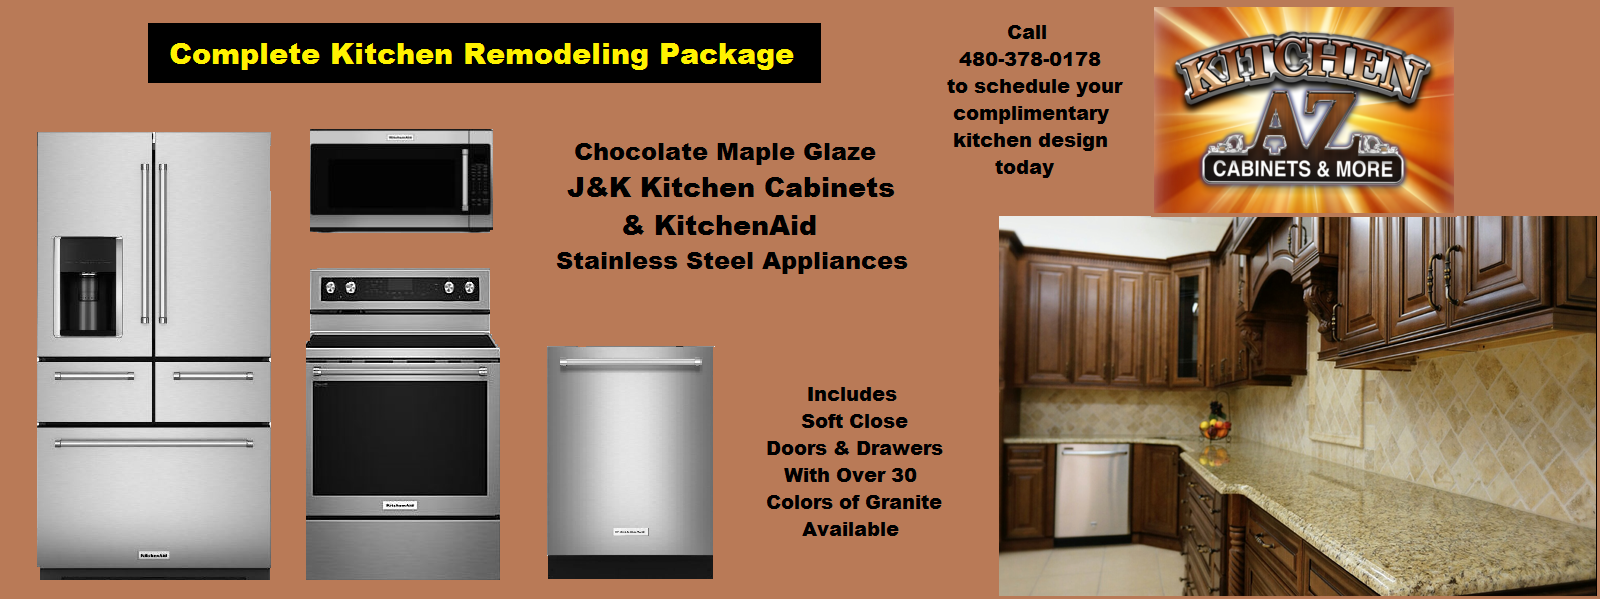 Kitchenaid Appliance Package With Cabinets